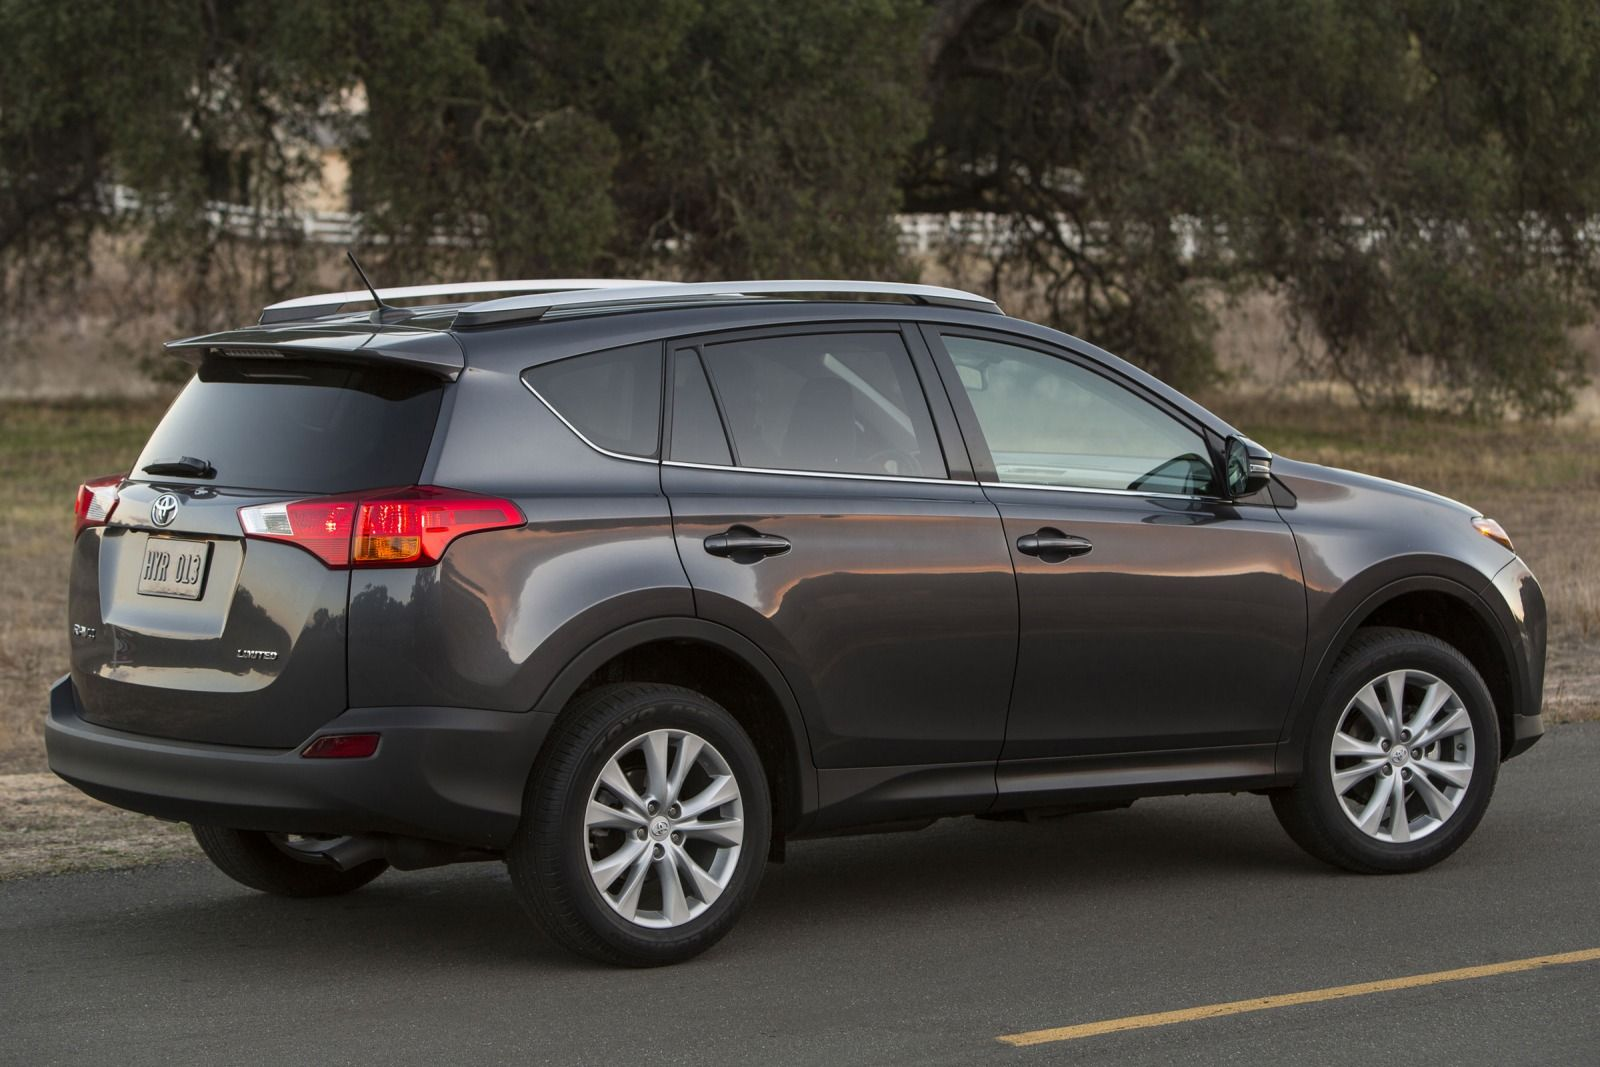 2015 Toyota RAV4 rear side